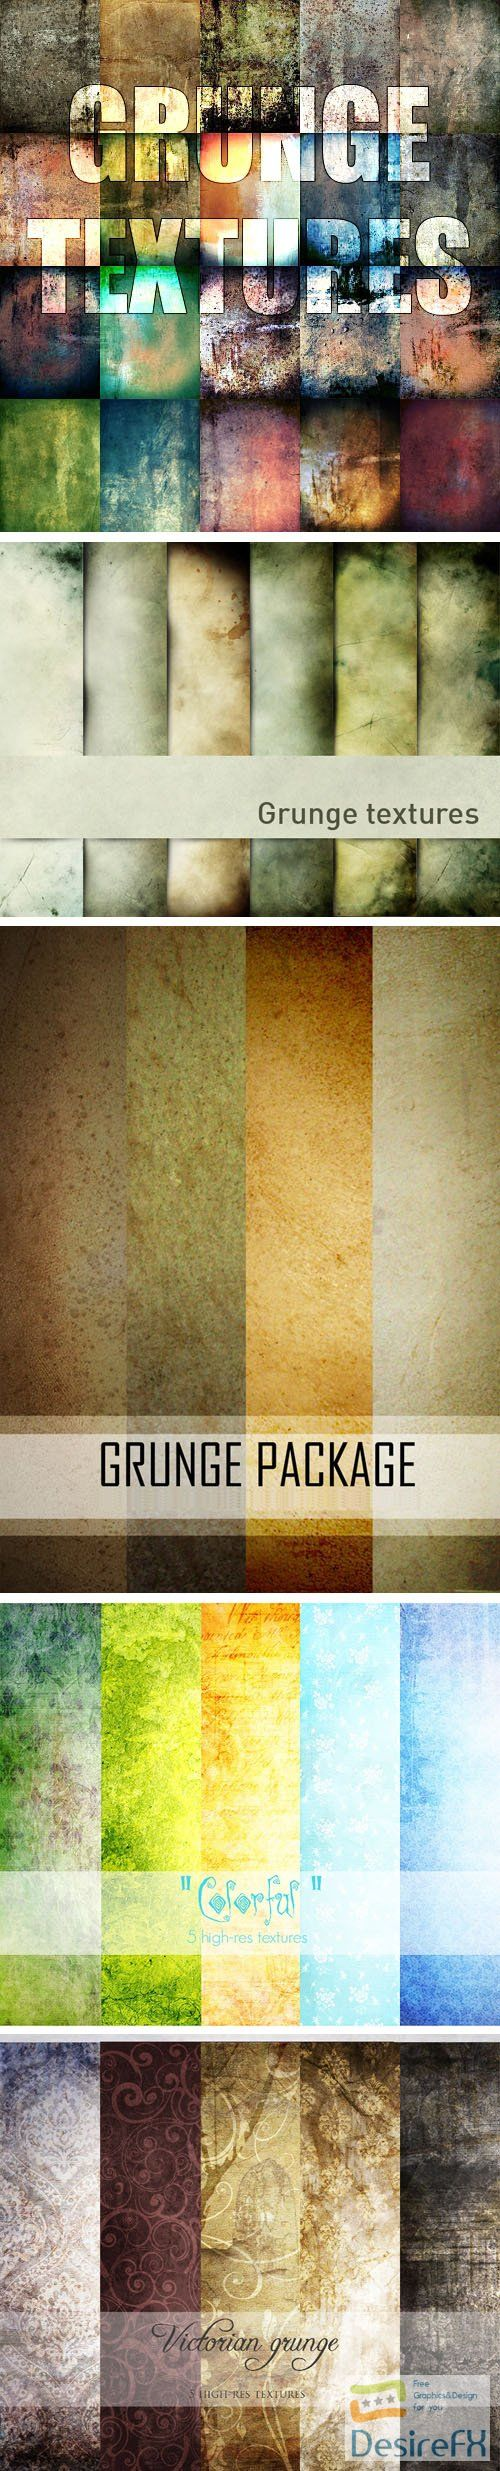 40+ Beautiful Grunge Textures Collection